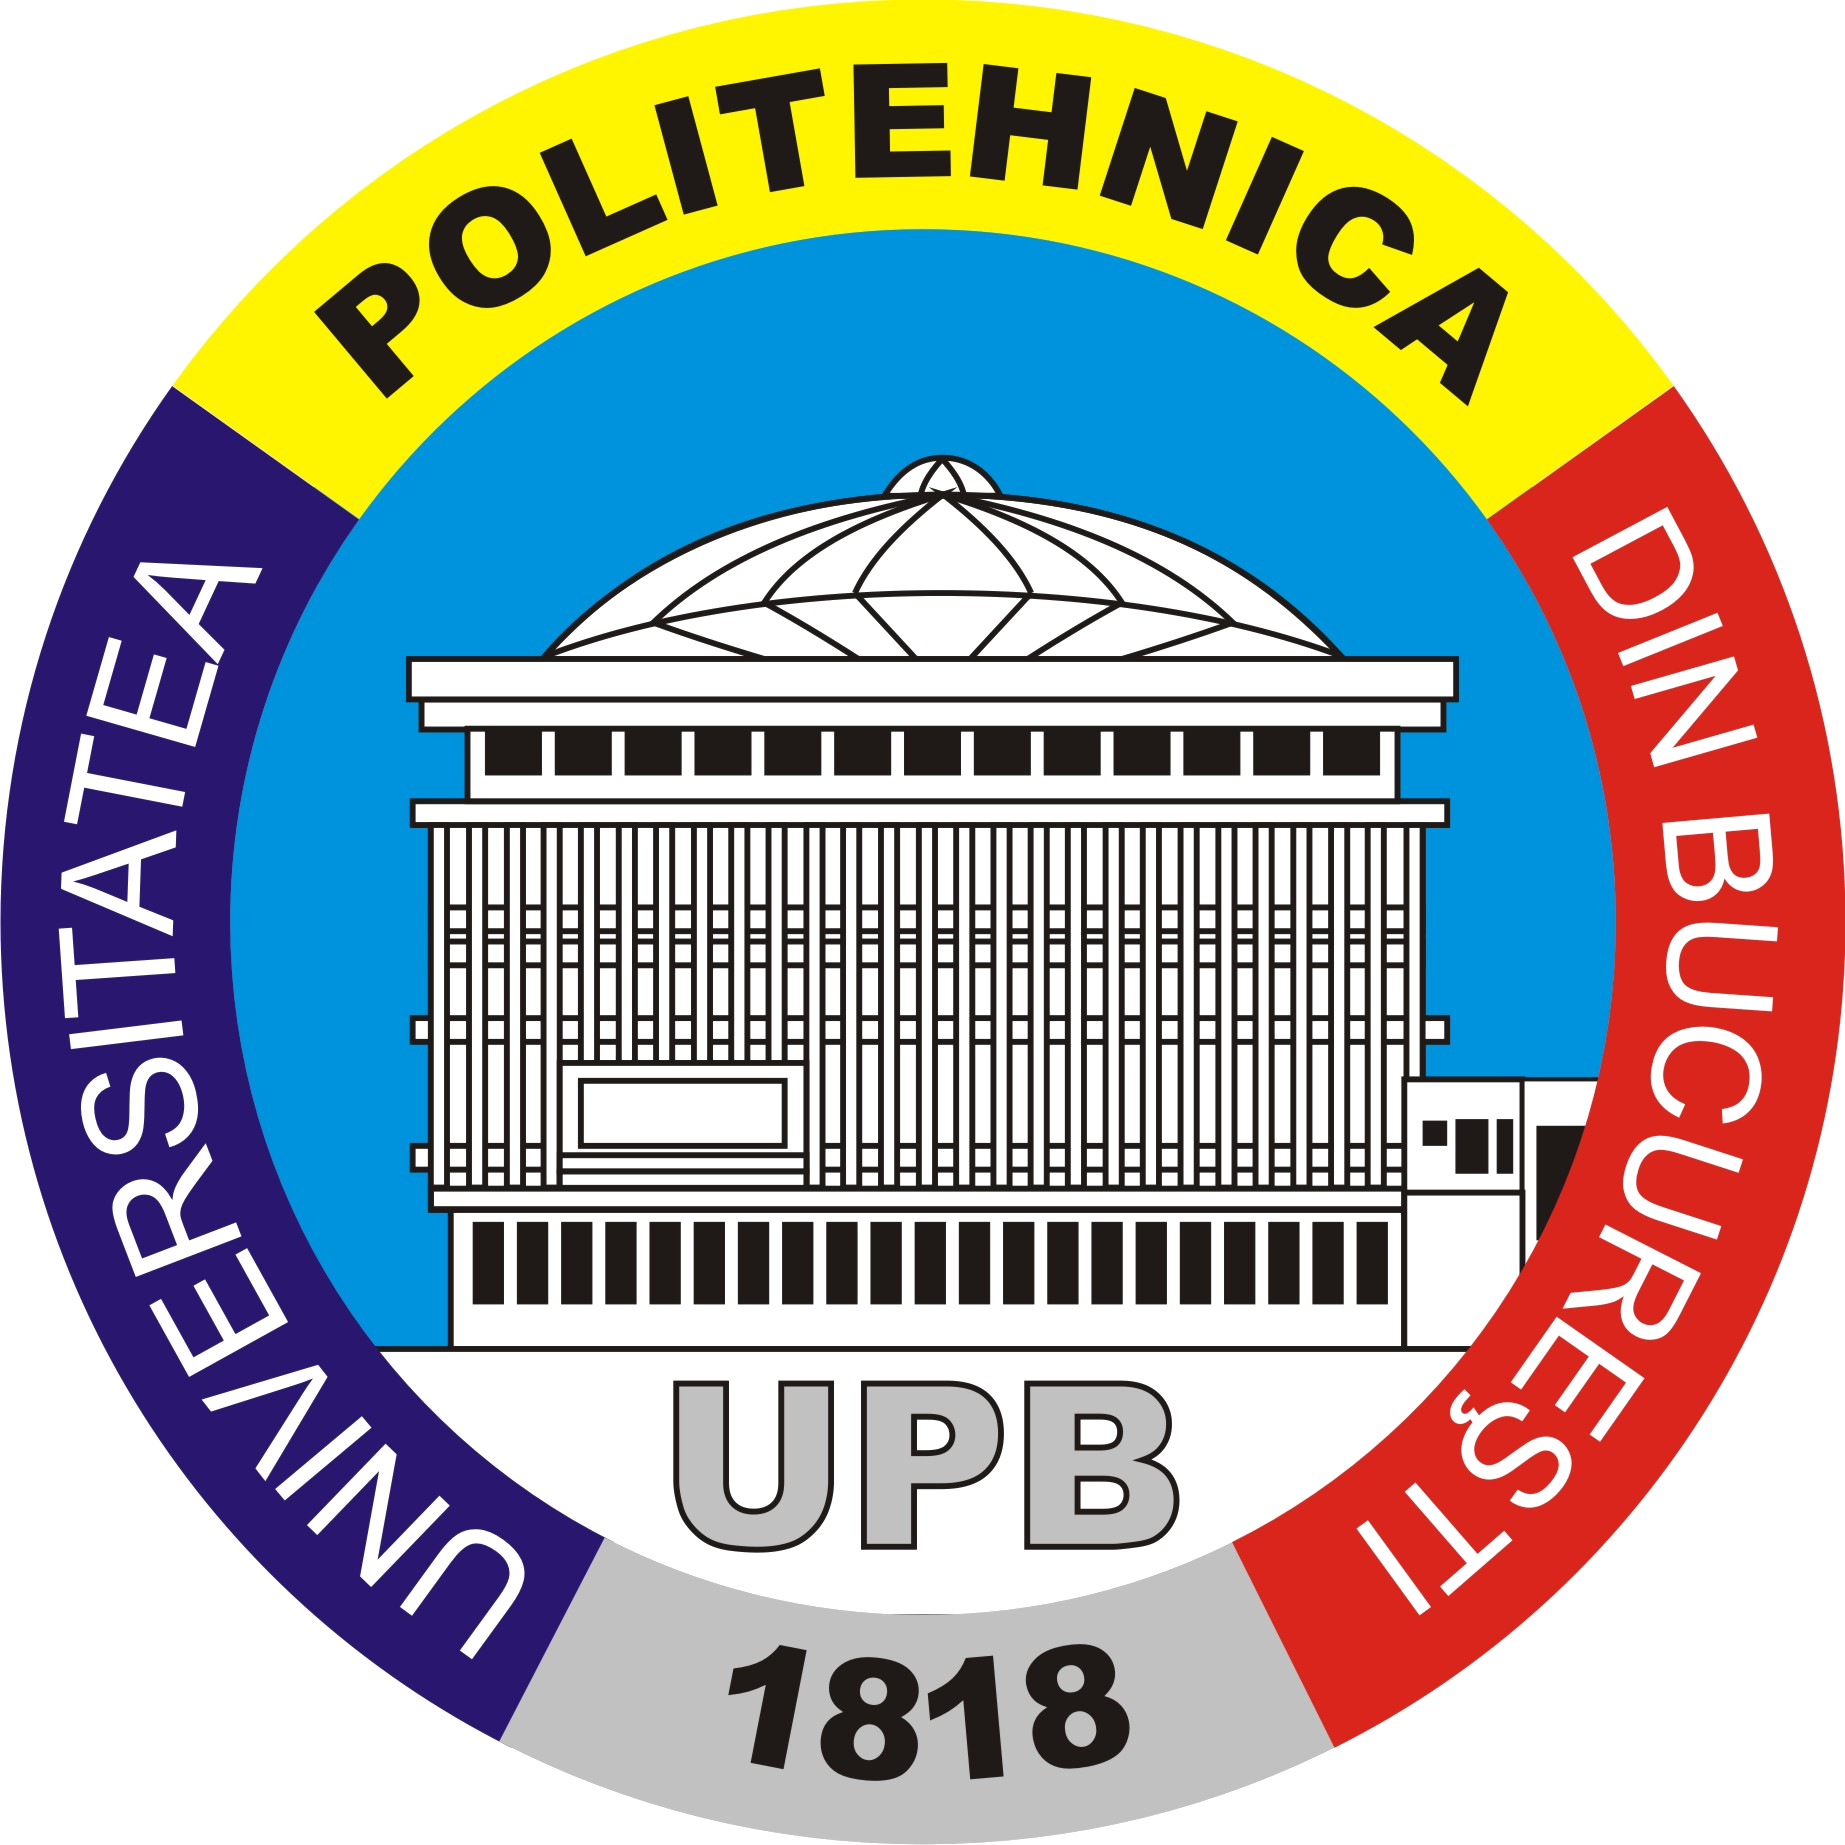 upb-logo-transparent.png